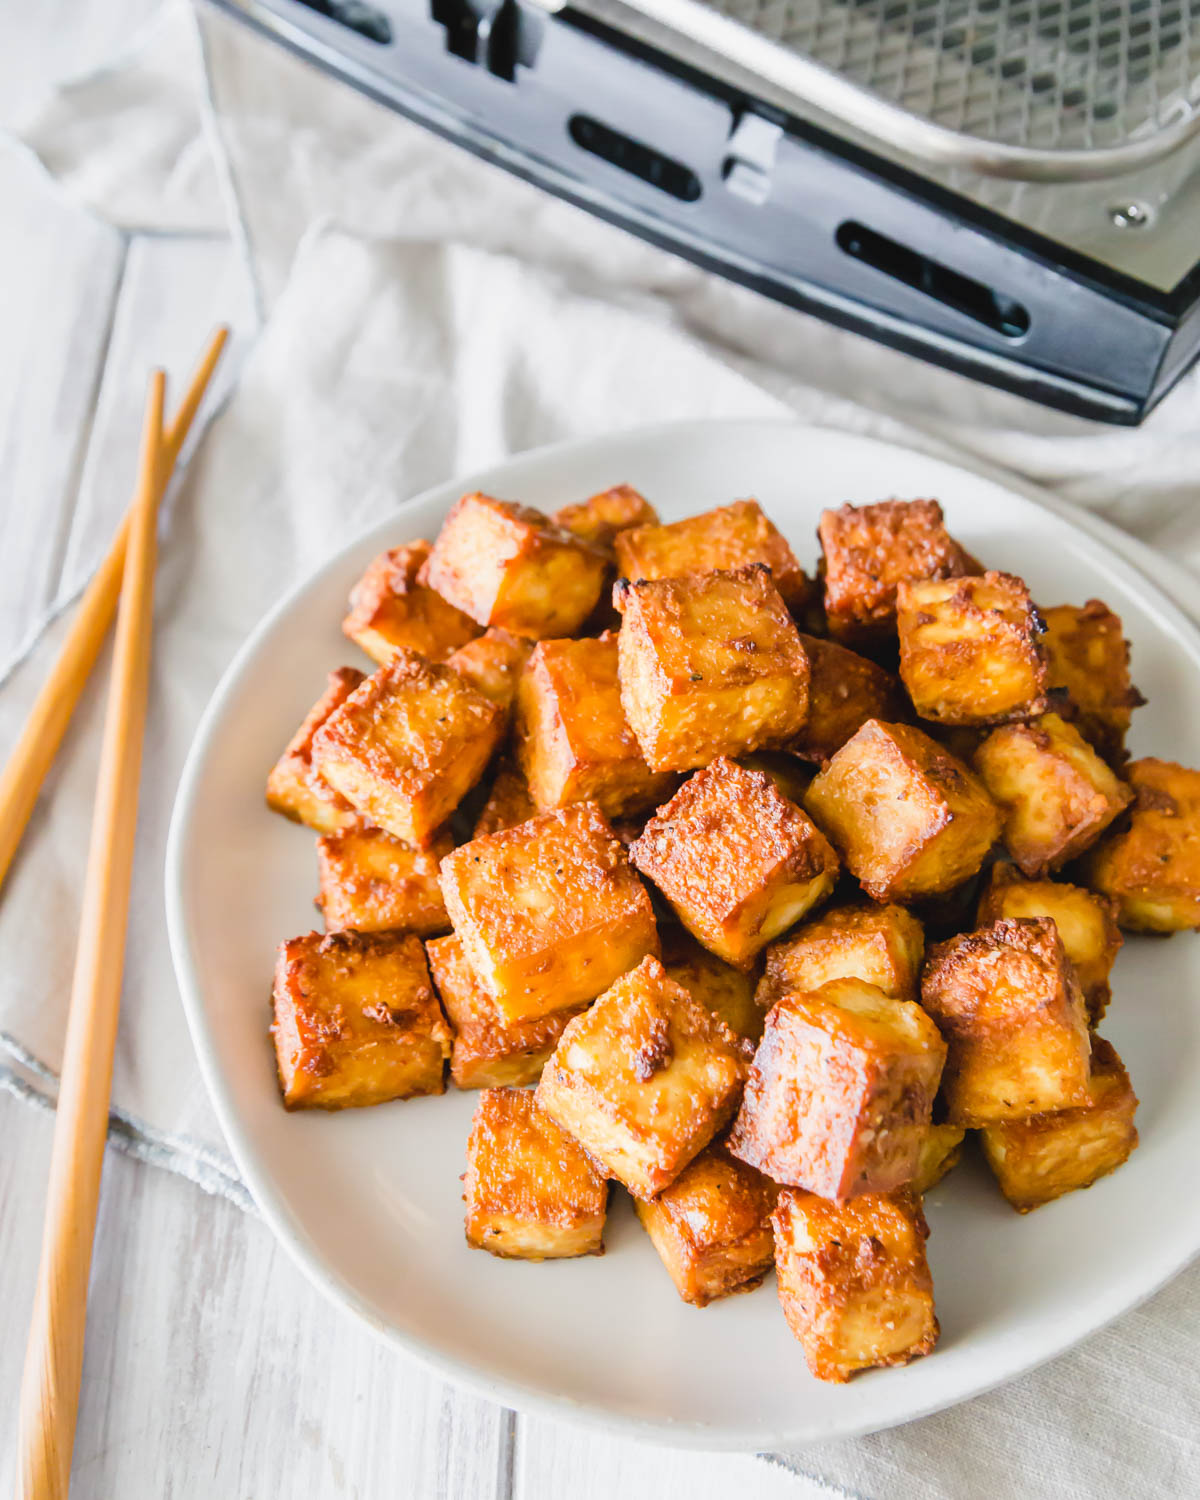 Learn how to make tofu in an air fryer with this quick and easy recipe.